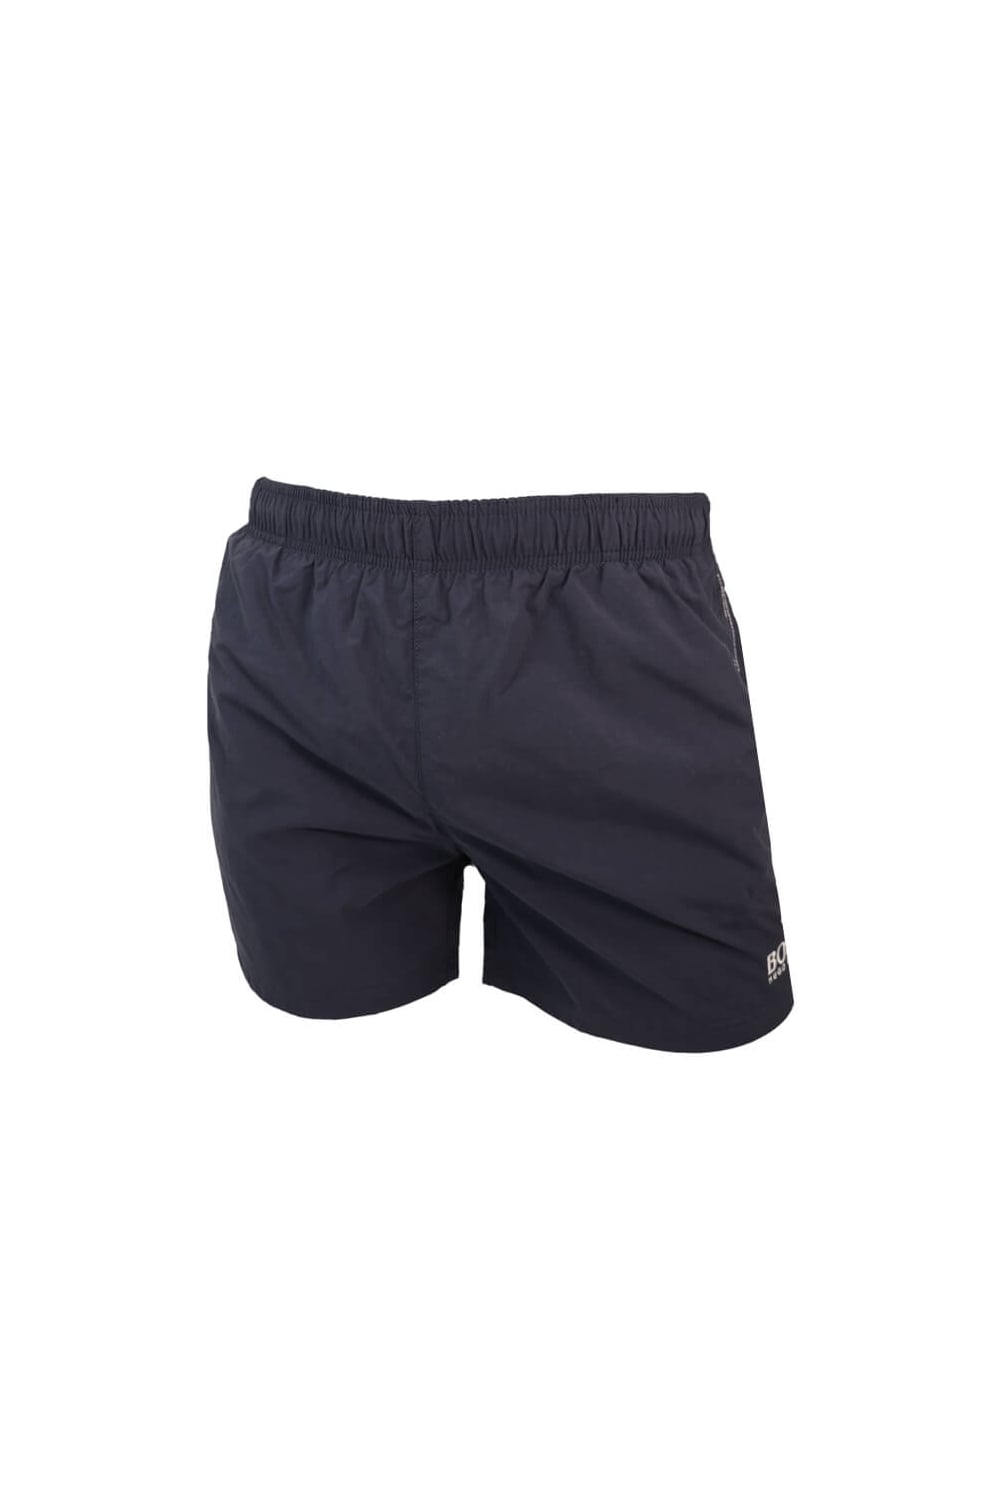 474a1496 Hugo Boss Green Perch Swim Shorts Navy - Clothing from Michael ...